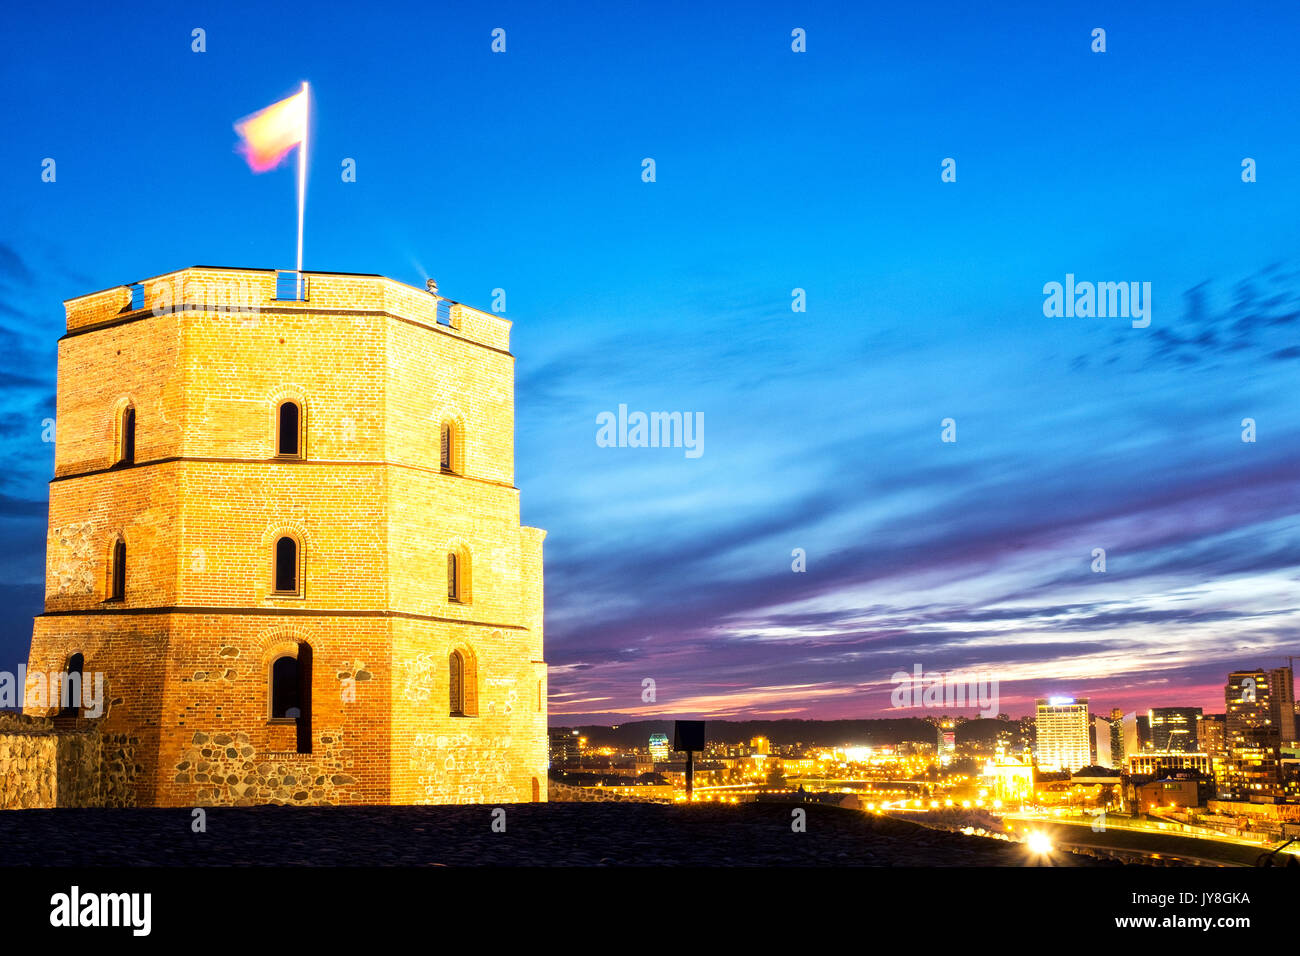 Gediminas Tower, Vilnius, Lithuania - Stock Image